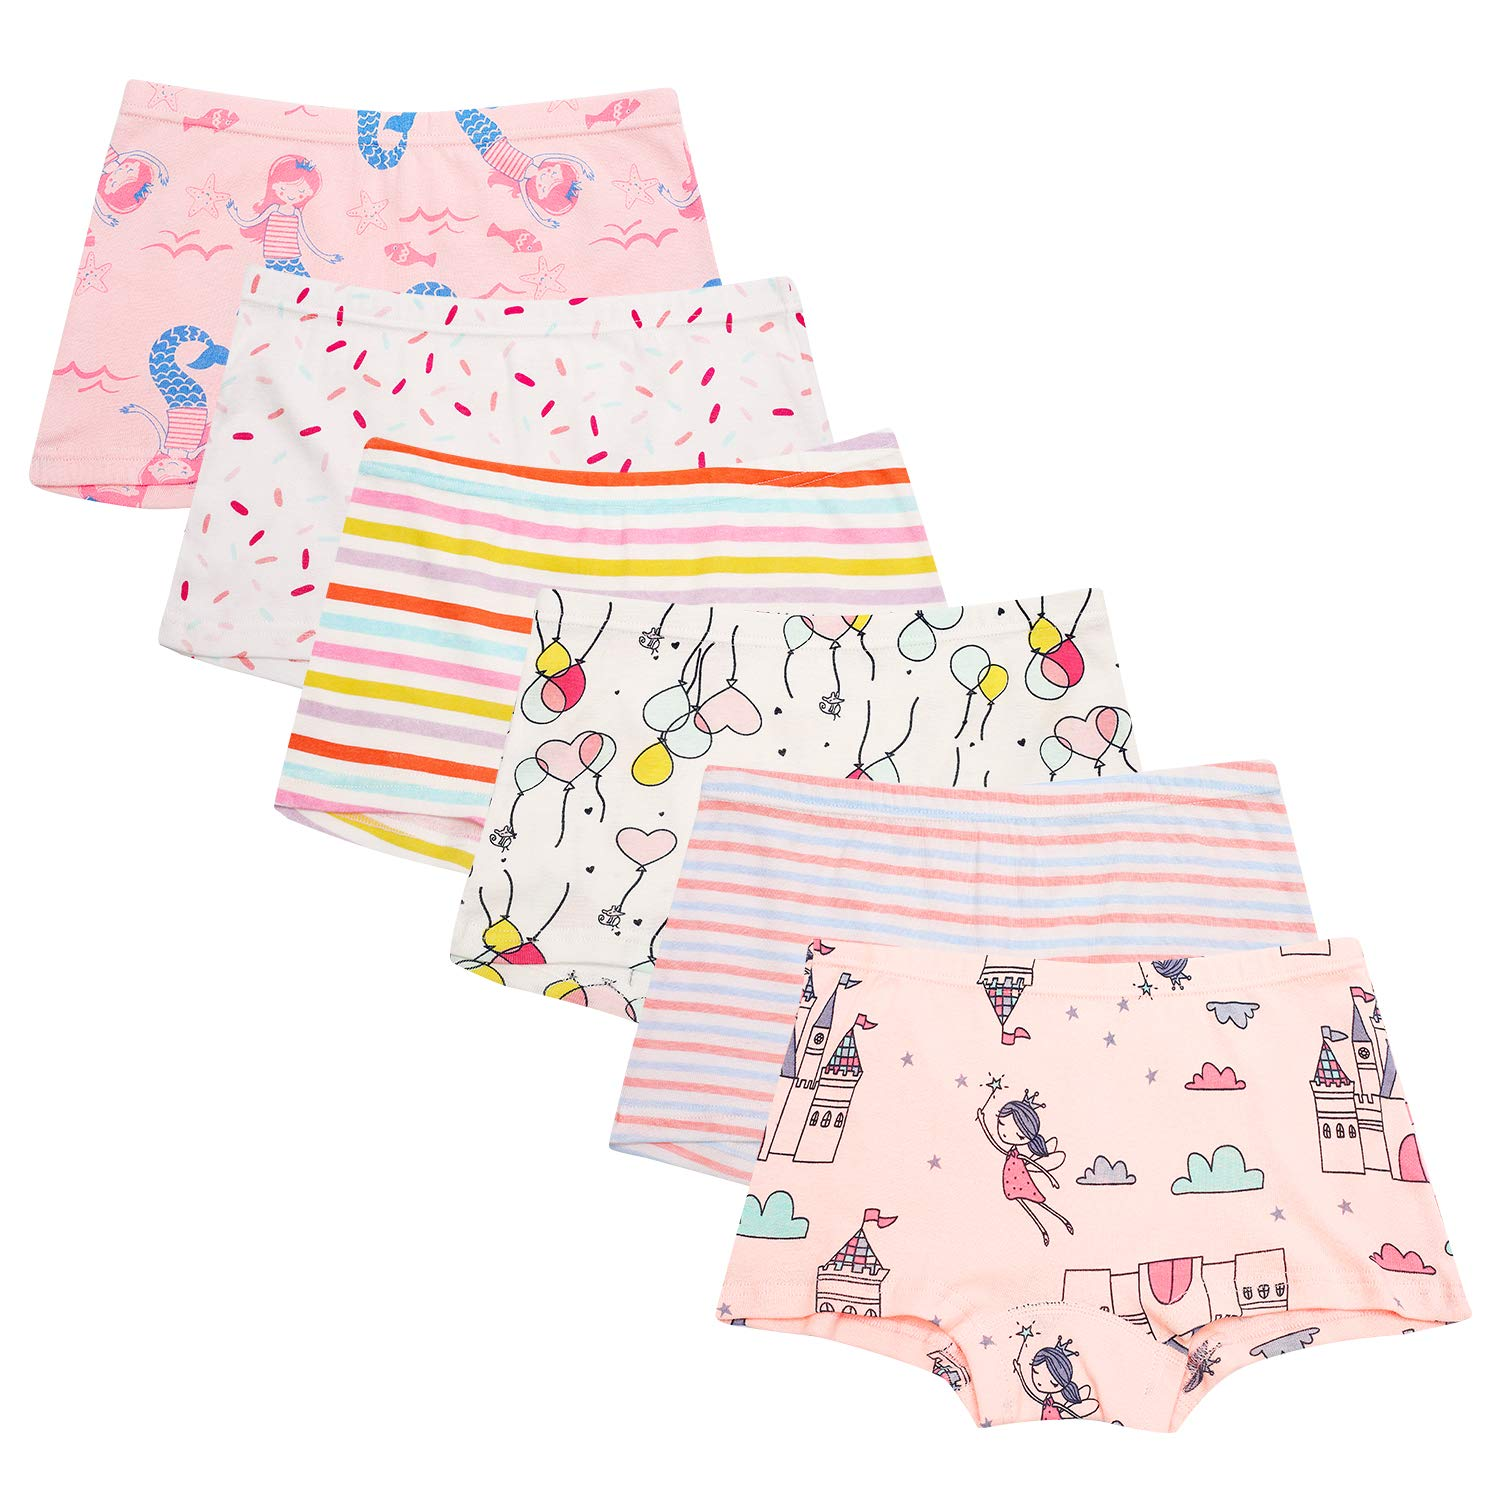 Cassiecy 6 Pack Little Girls Knickers Baby Girl Cotton Lovely Boxer Briefs Size 2-13 Years